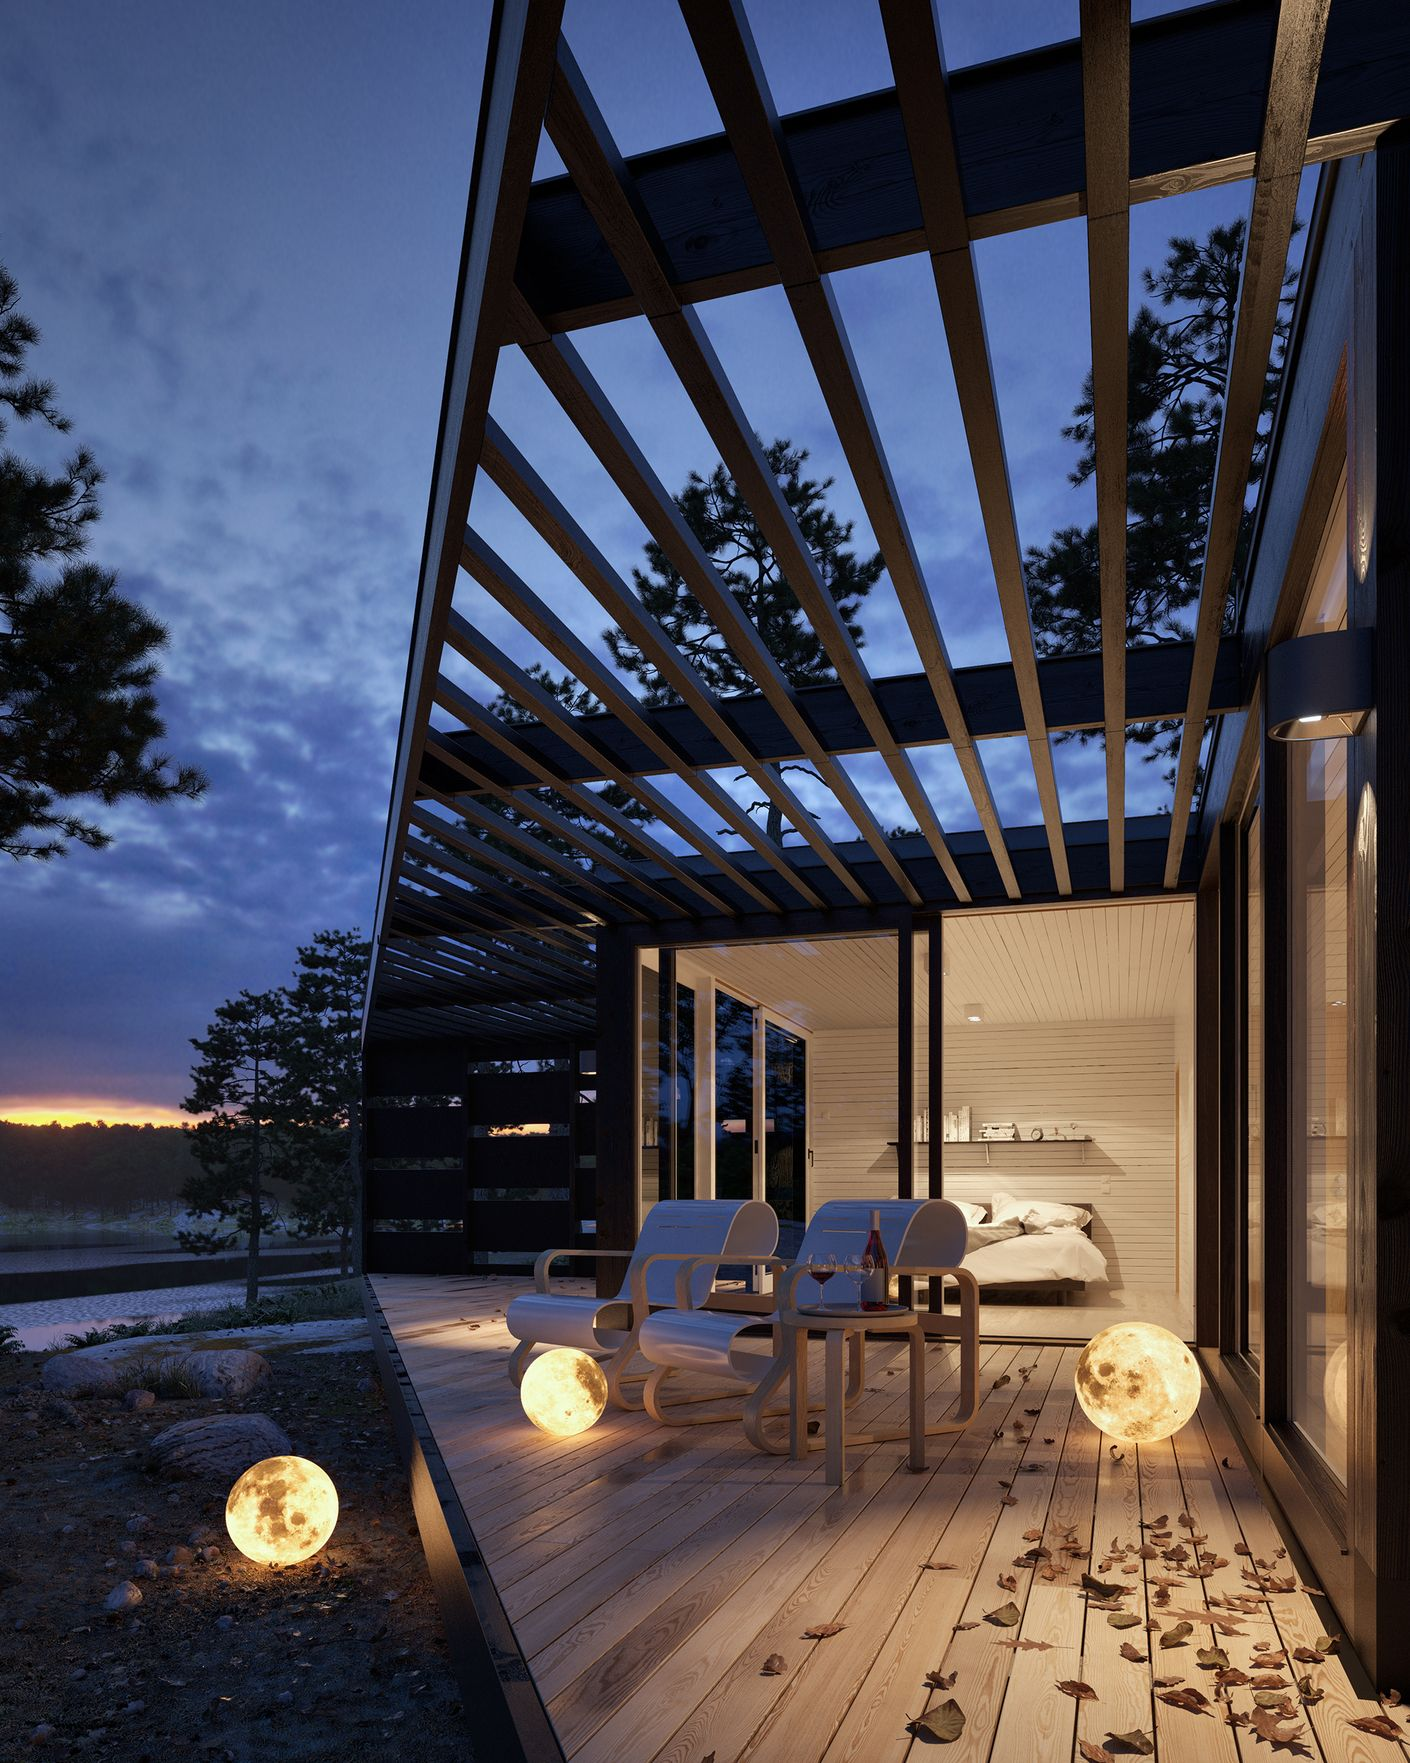 Gallery – Rendered With V-Ray For SketchUp